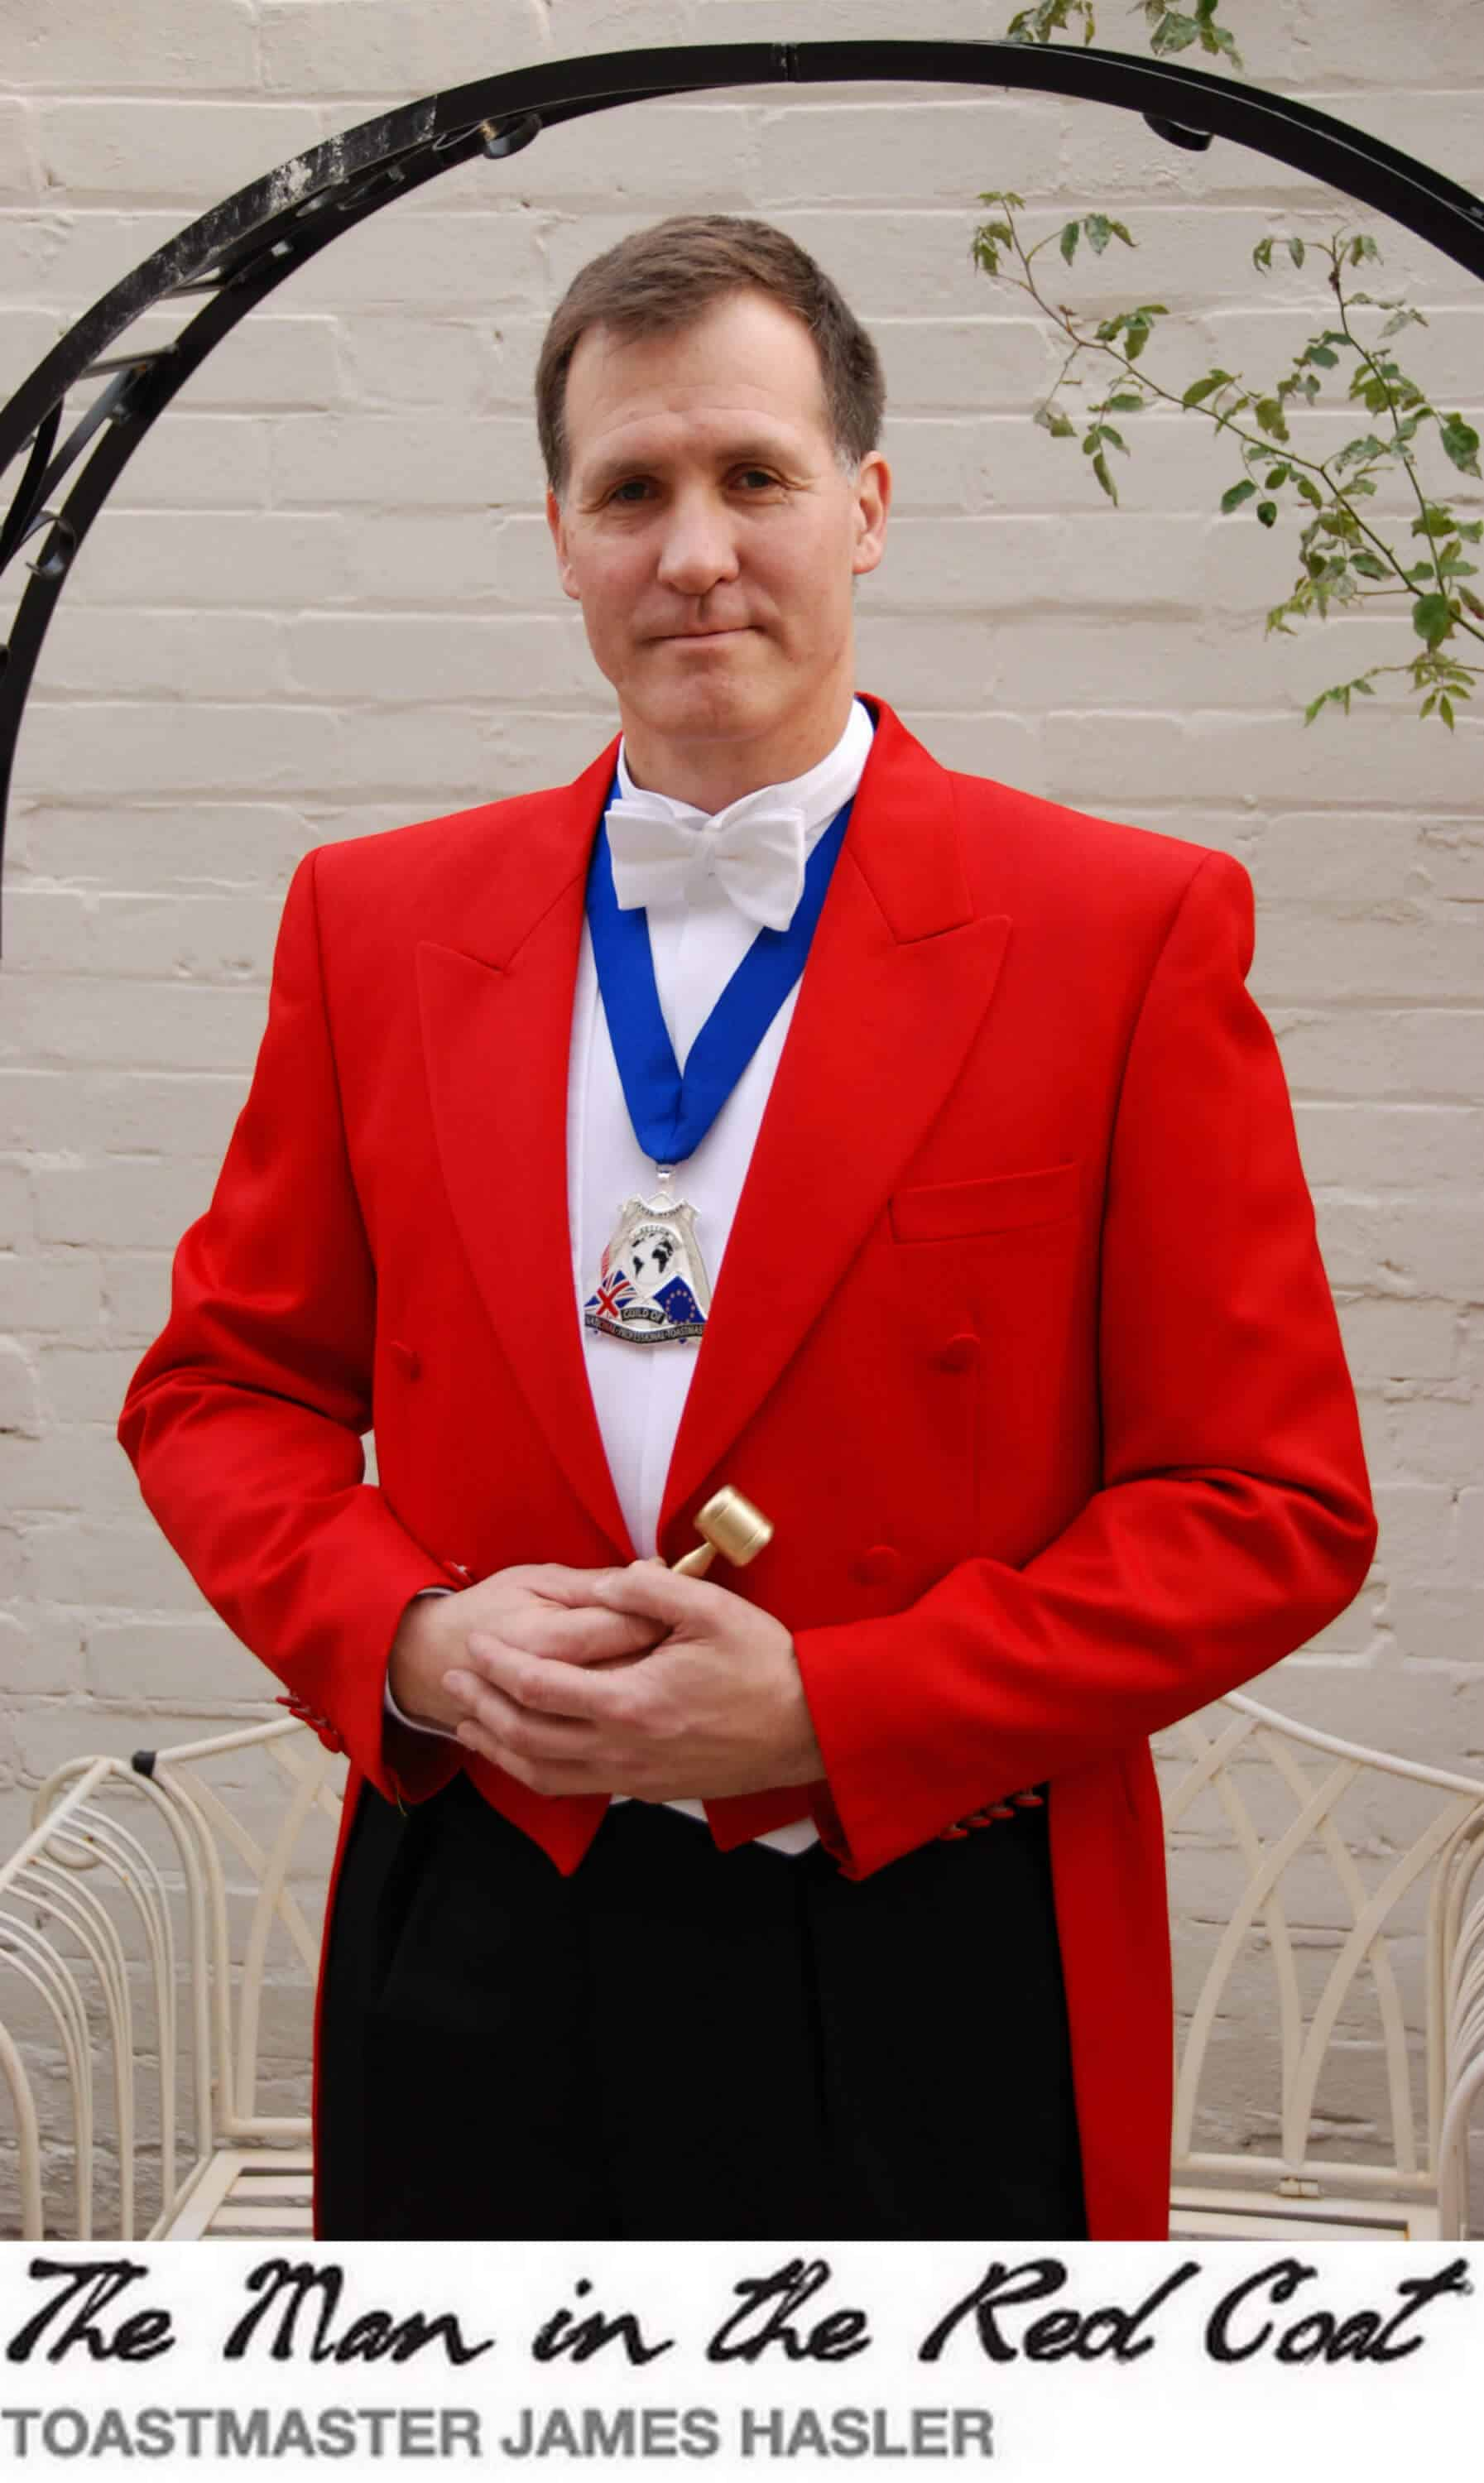 The Gallery of Toastmaster James Hasler - The Man in the Red Coat